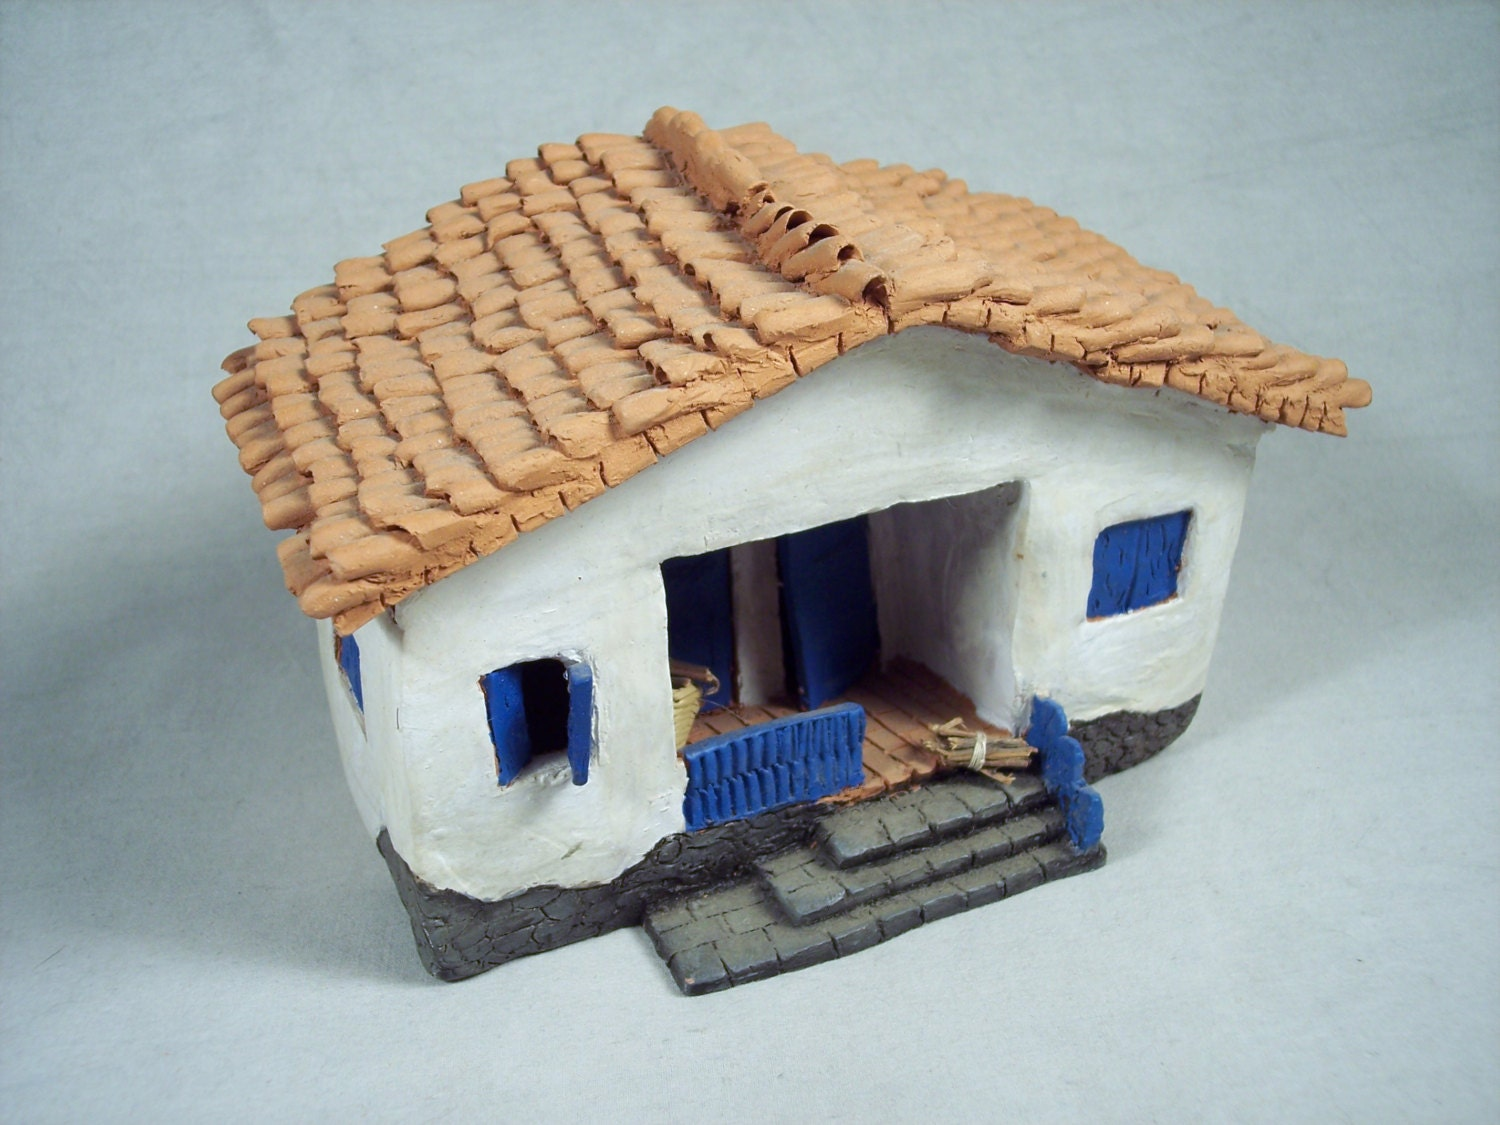 Making a model clay house